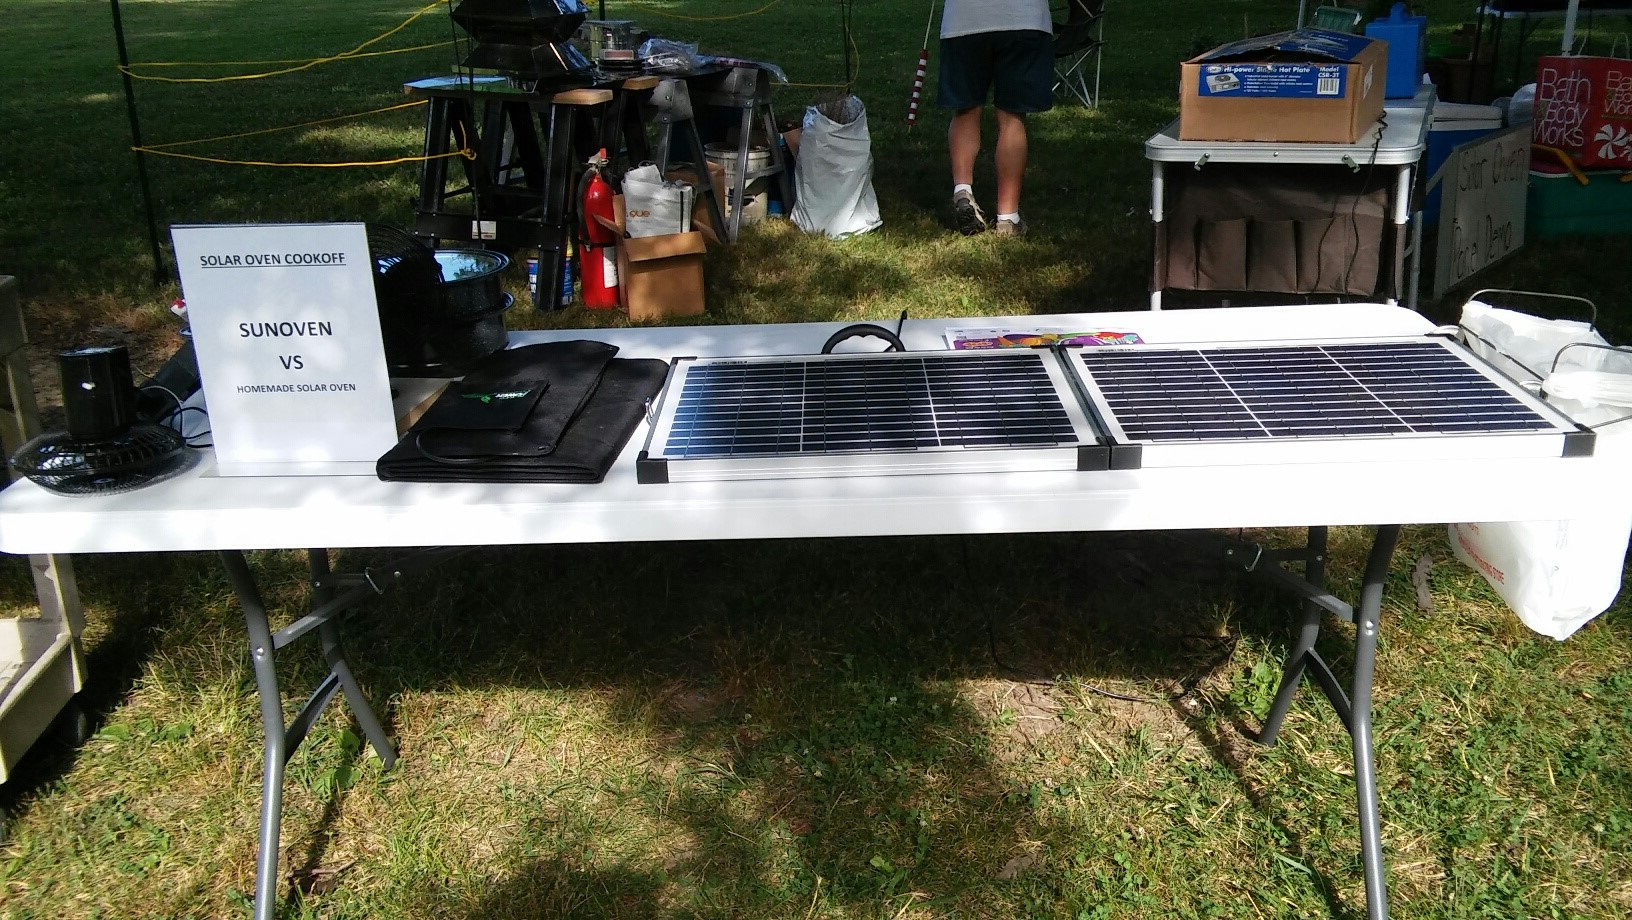 Solar Panel display and demonstration at The Westgate Summer Jam 2016